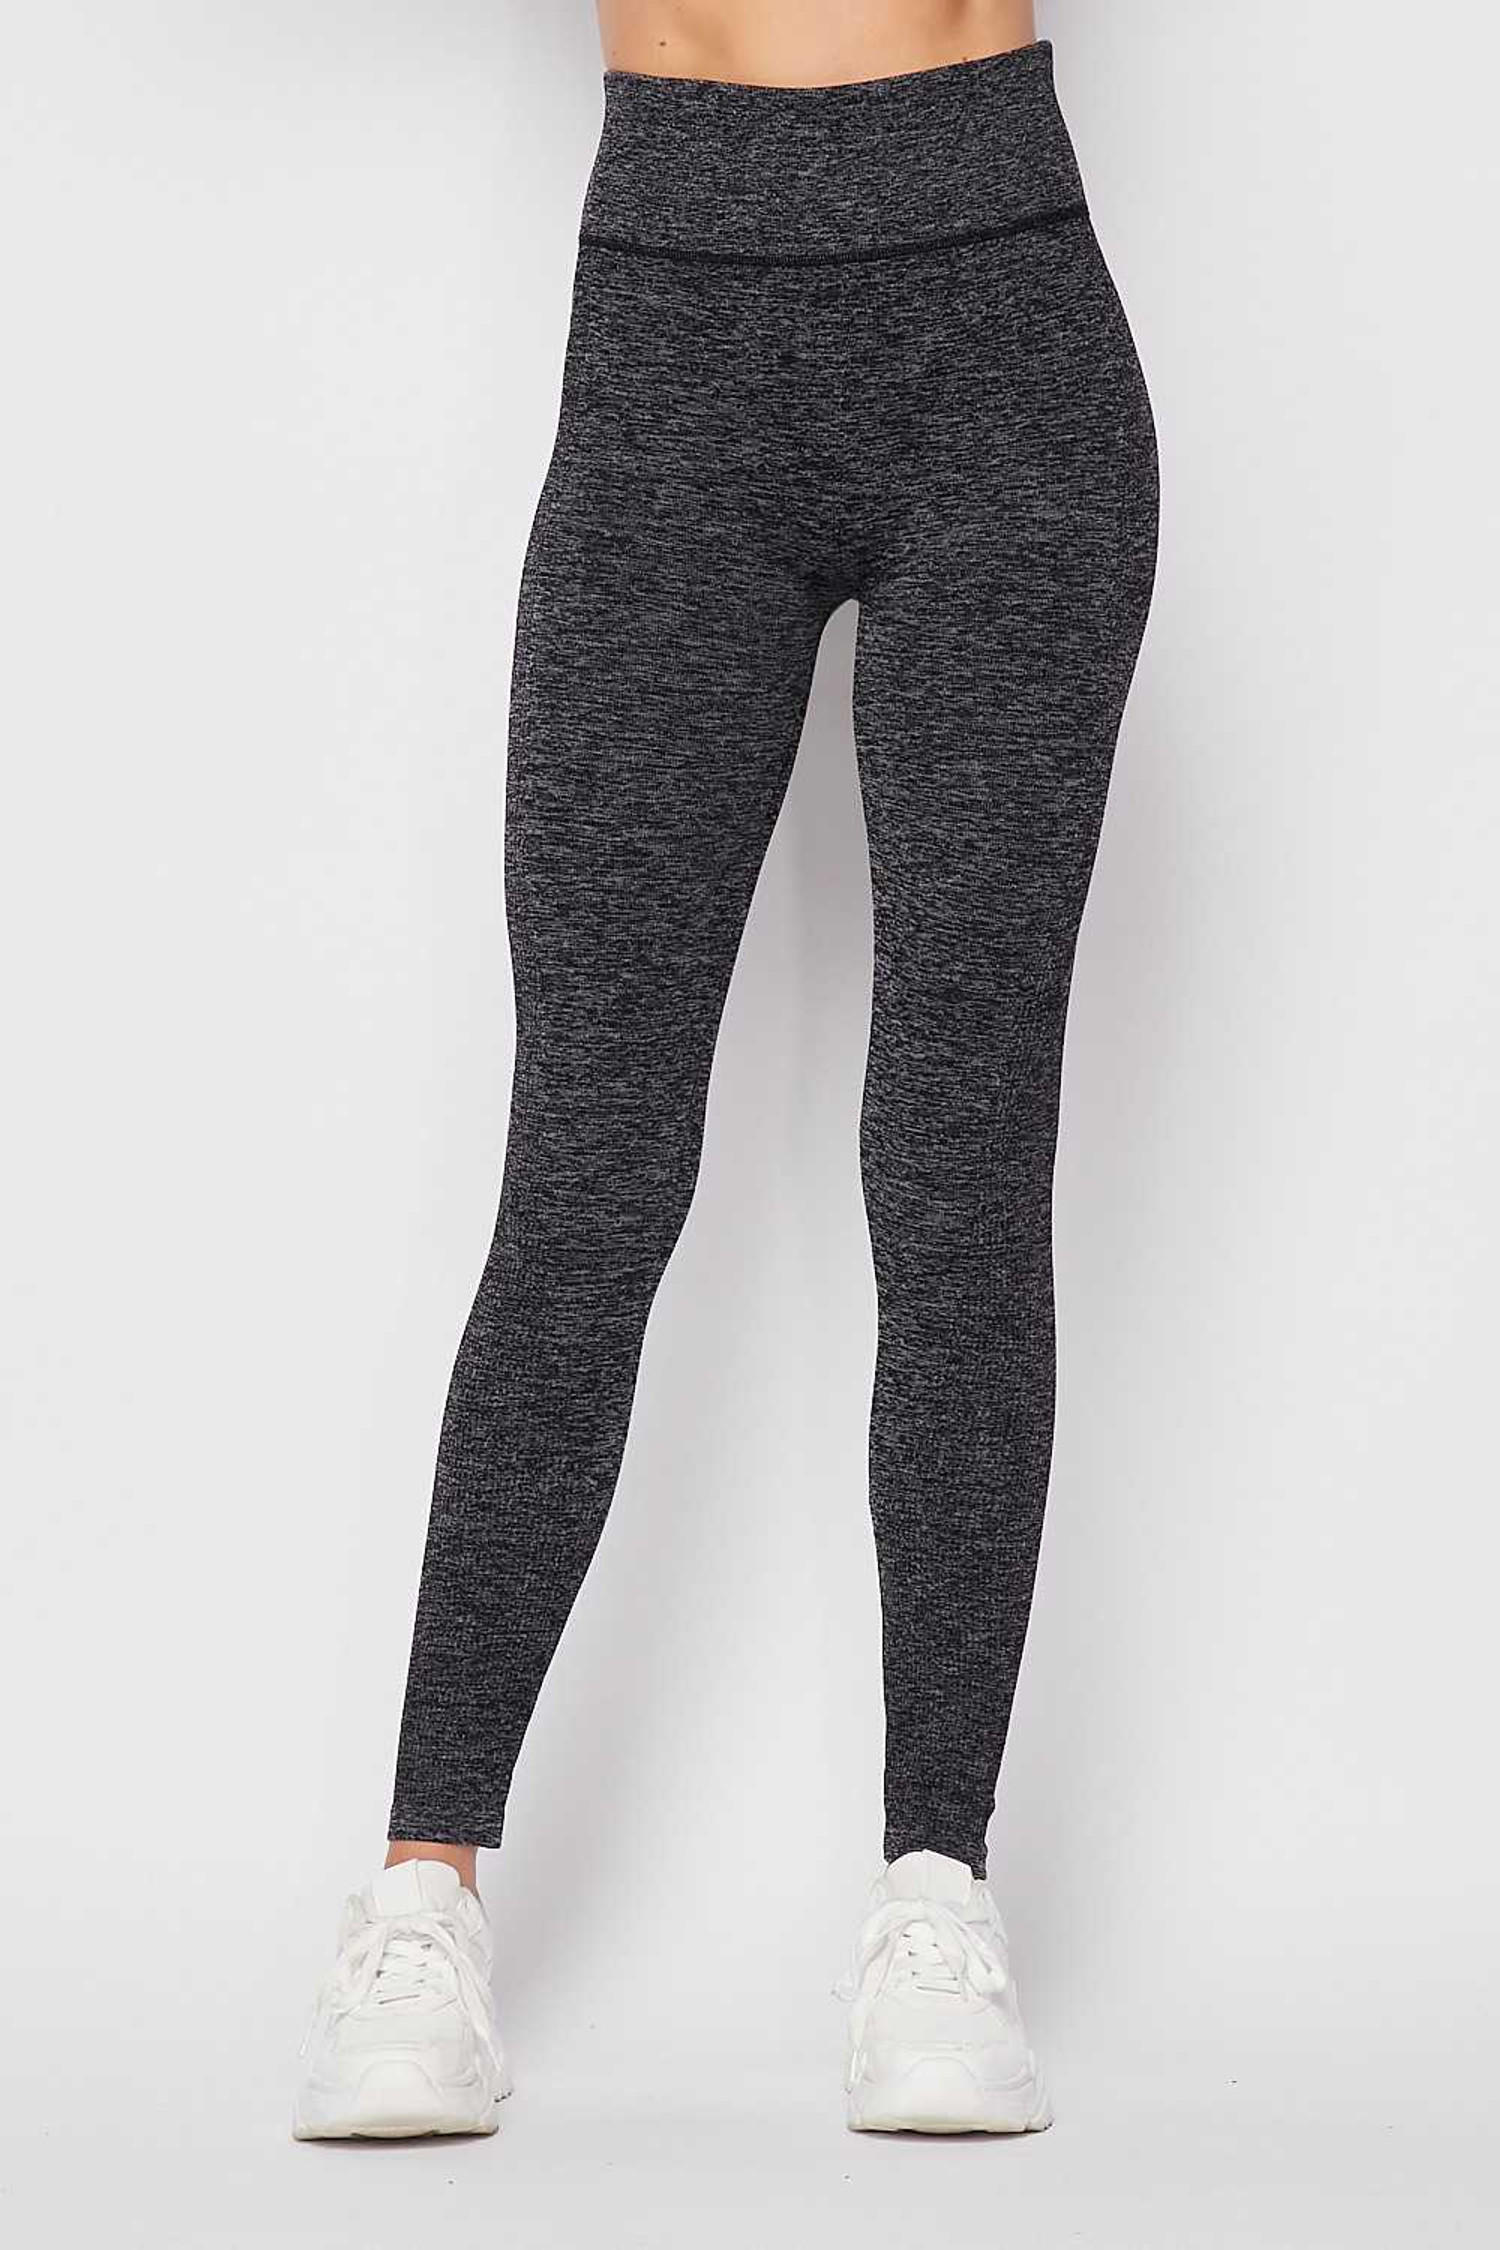 Charcoal Premium Comfort Body Wrapped High Waist Workout Leggings